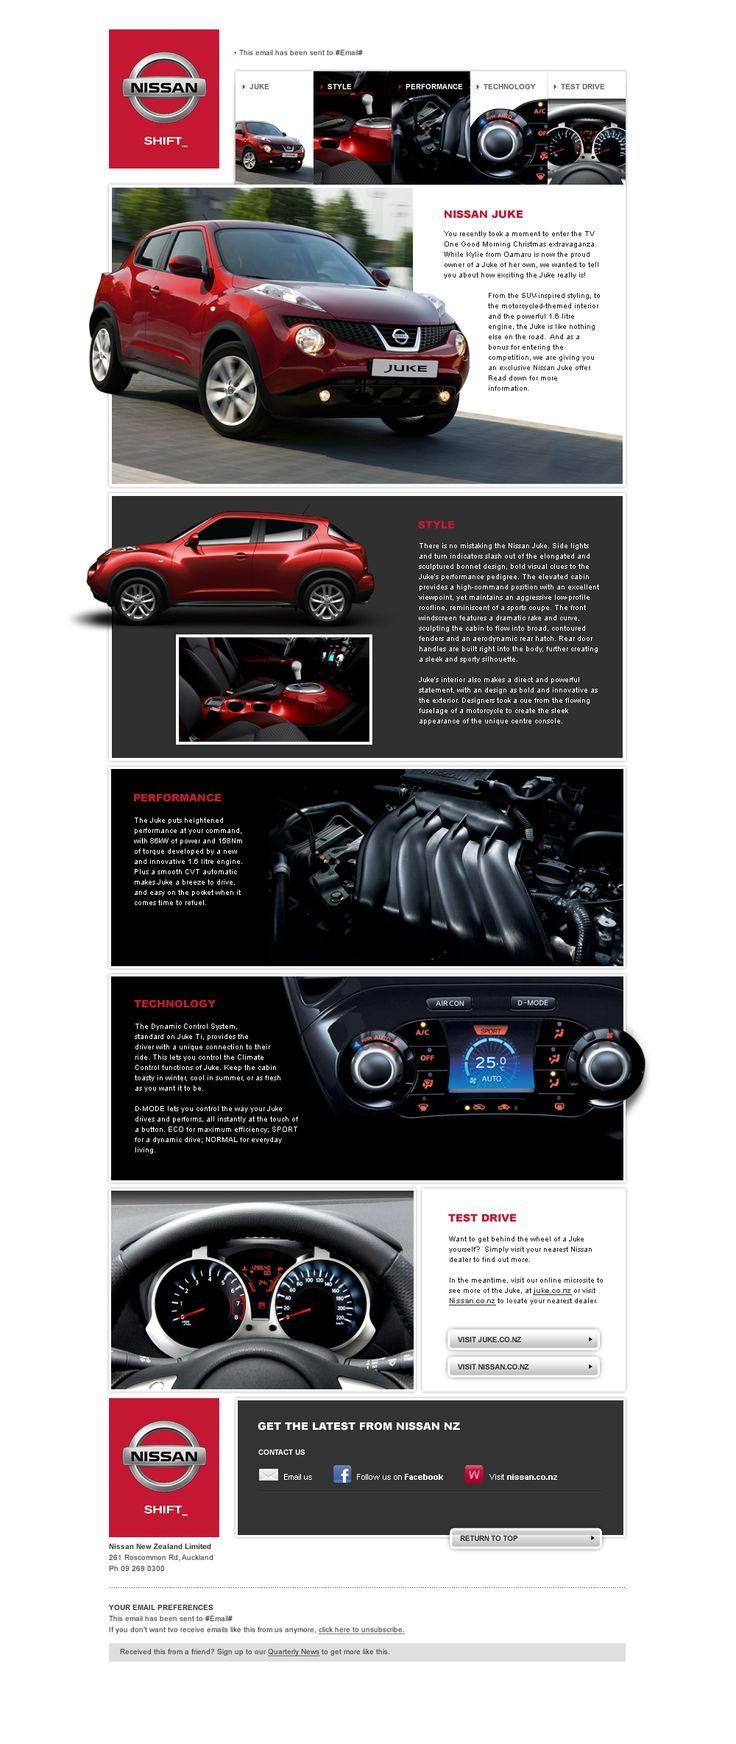 Nissan Email Template | Inspirational Emails | Pinterest | Template